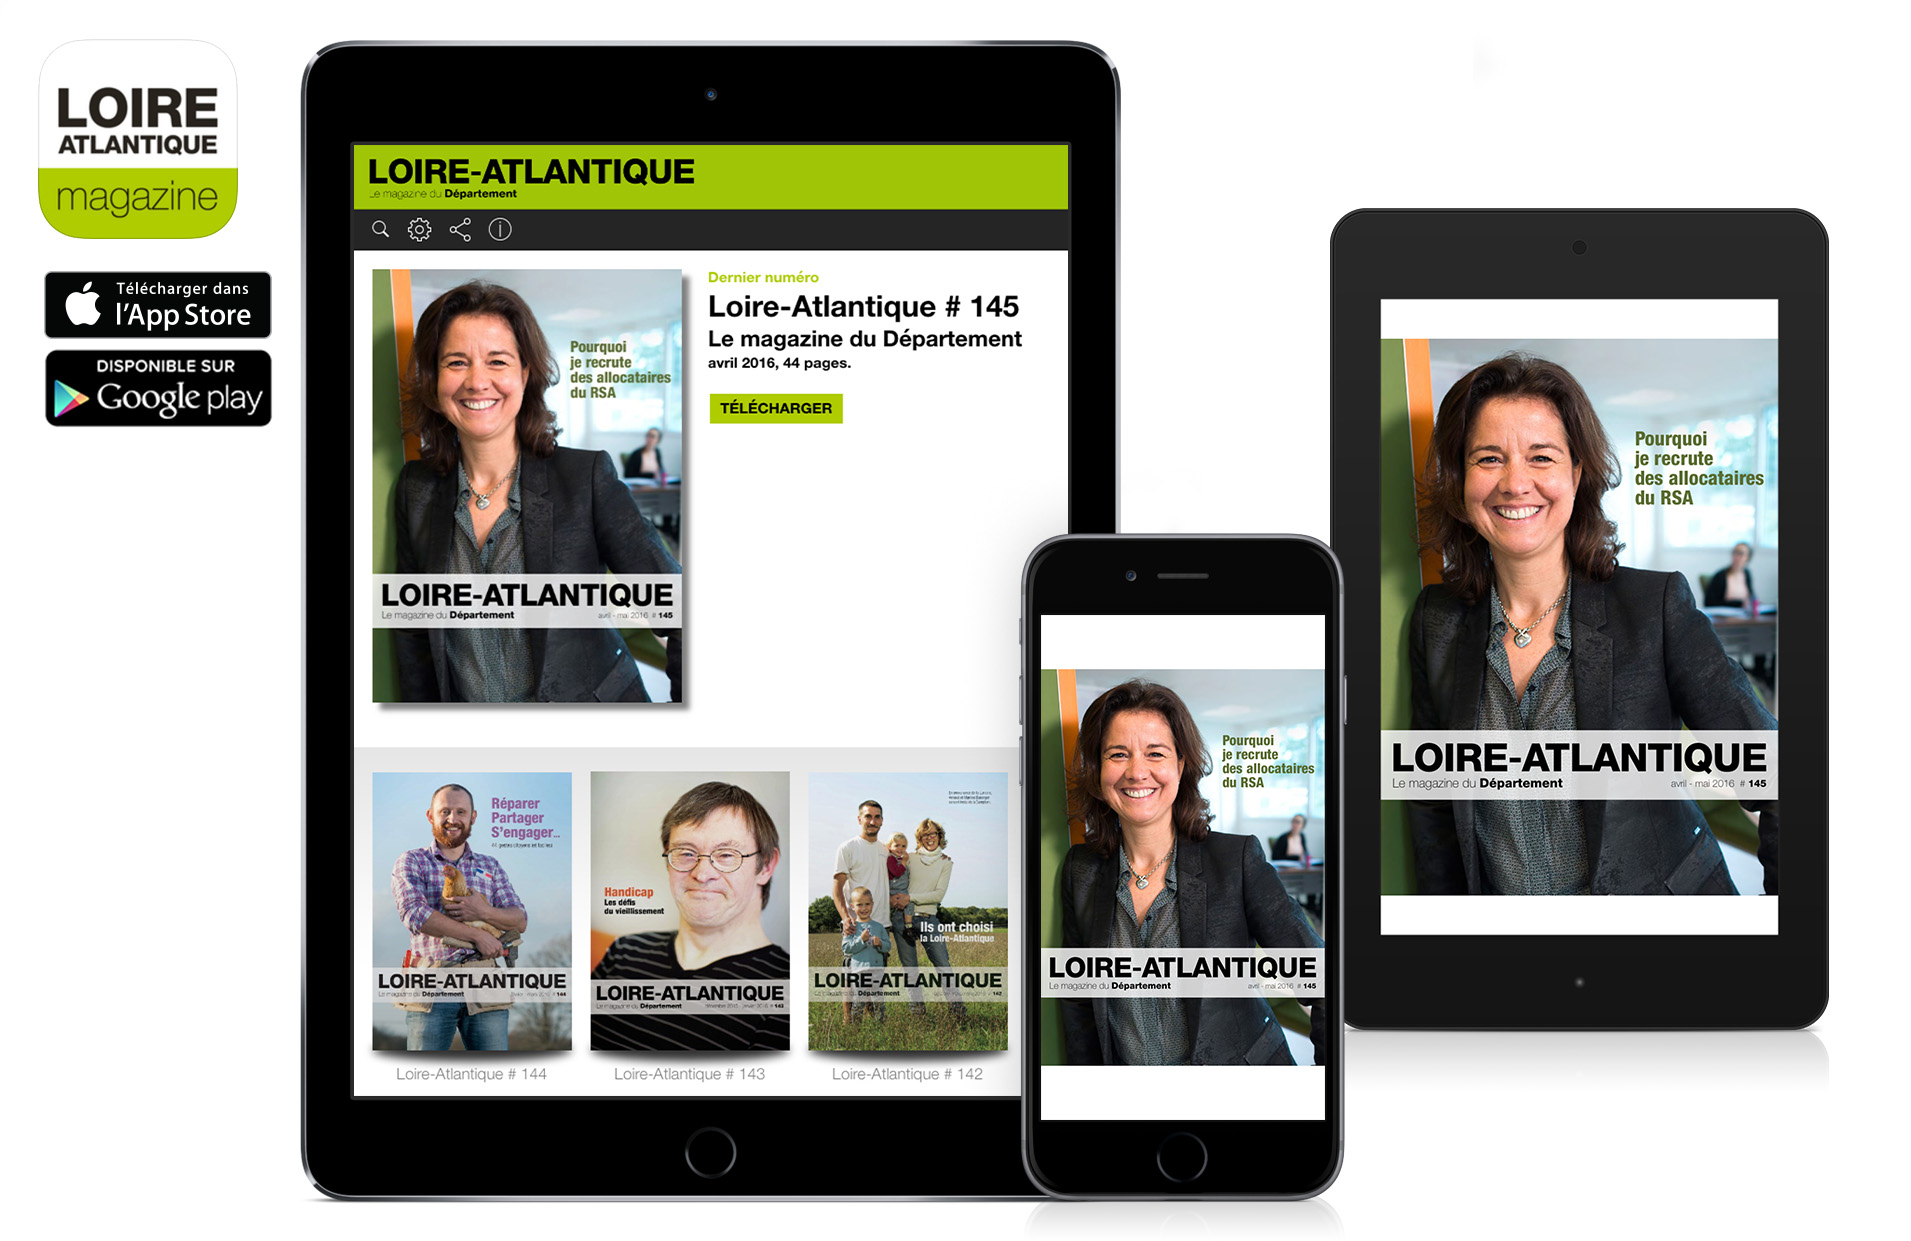 flippad-application-kiosque-magazine-loire-atlantique-ipad-iphone-android